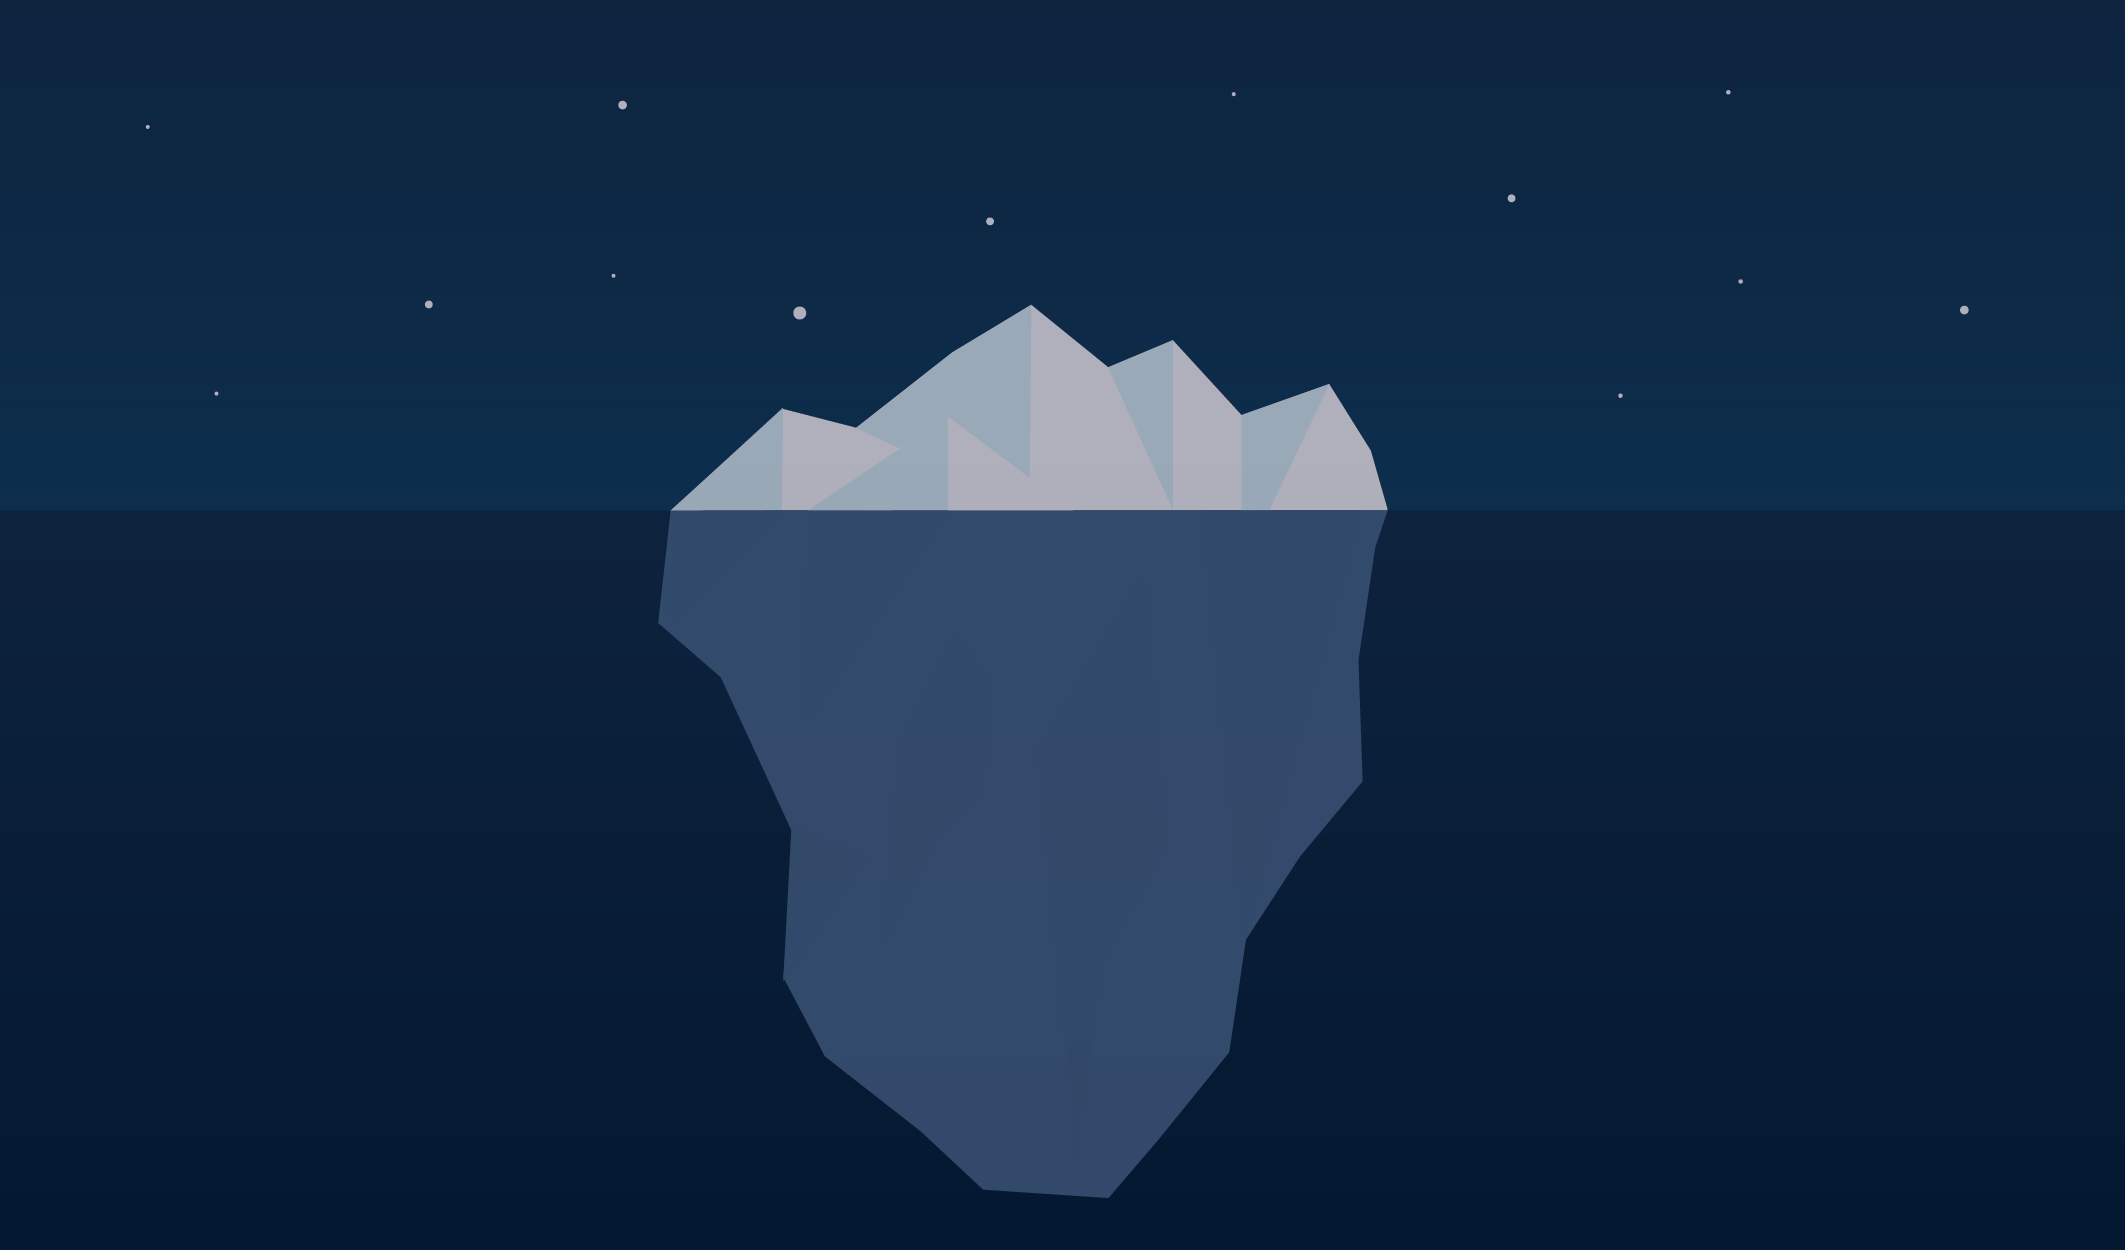 A graphic of an iceberg, representing hidden fees.